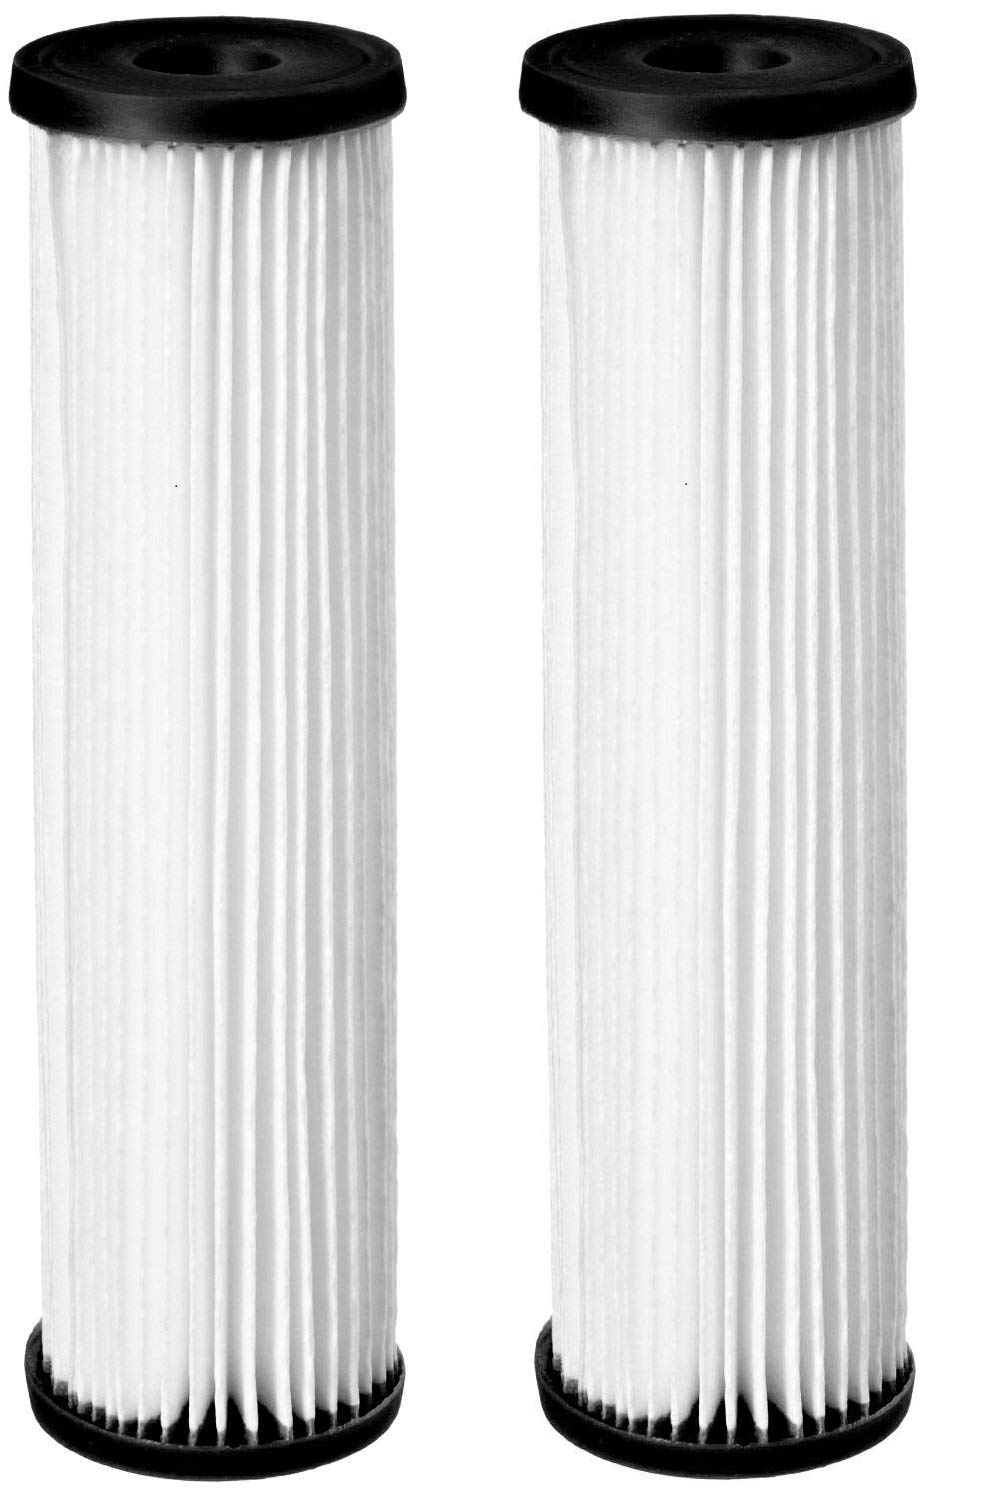 Pentek S1-20BB Pleated Cellulose Filter Cartridge, 20'' x 4-1/2'', 20 Micron (Pack of 2) by Pentek